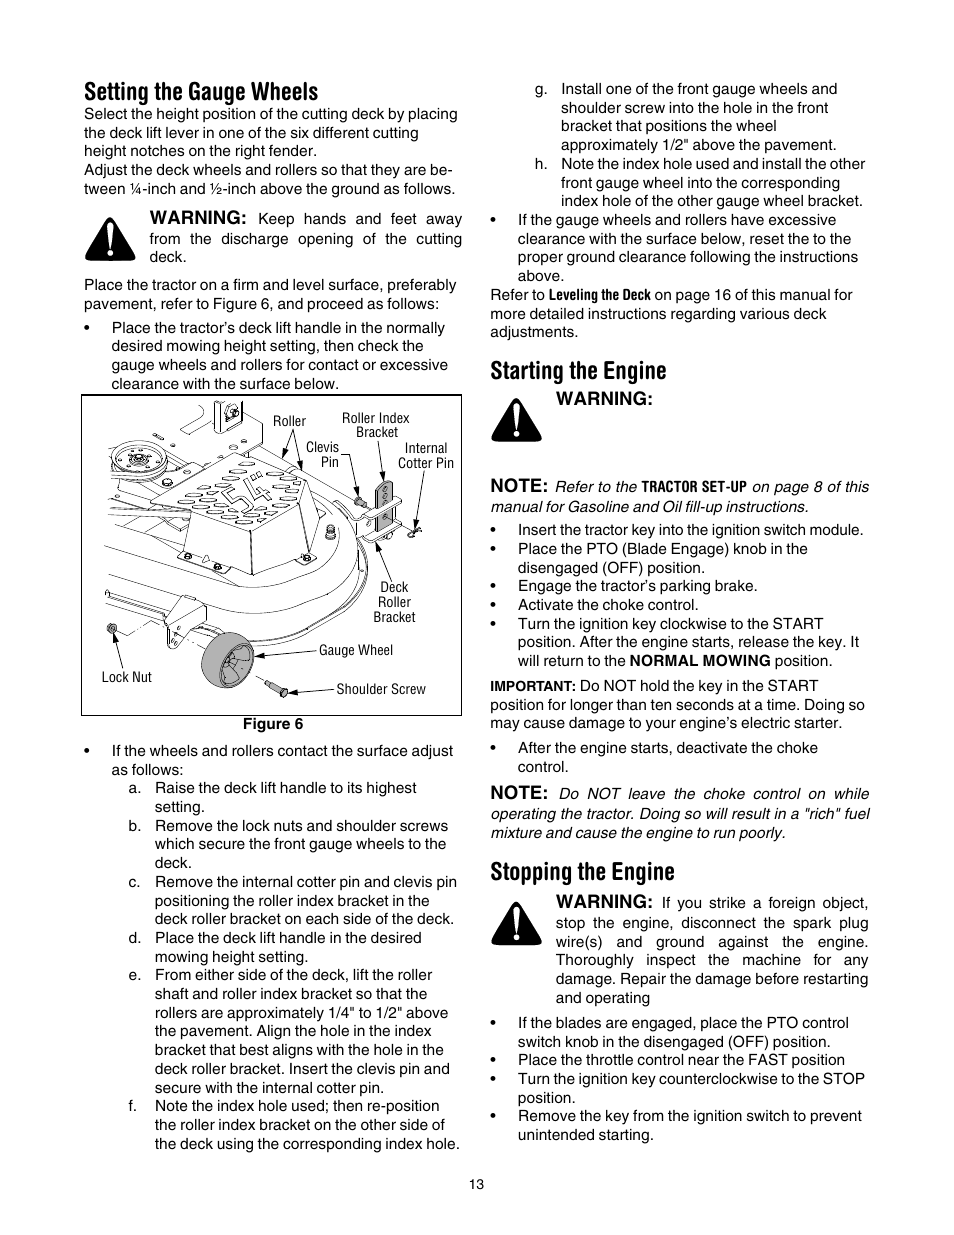 Colorful Cub Cadet Gt1554 Wiring Diagram Picture Collection - Wiring on cub cadet 1440 wiring schematic, cub cadet i1050 wiring schematic, cub cadet i1046 wiring schematic, cub cadet lt1045 wiring schematic,